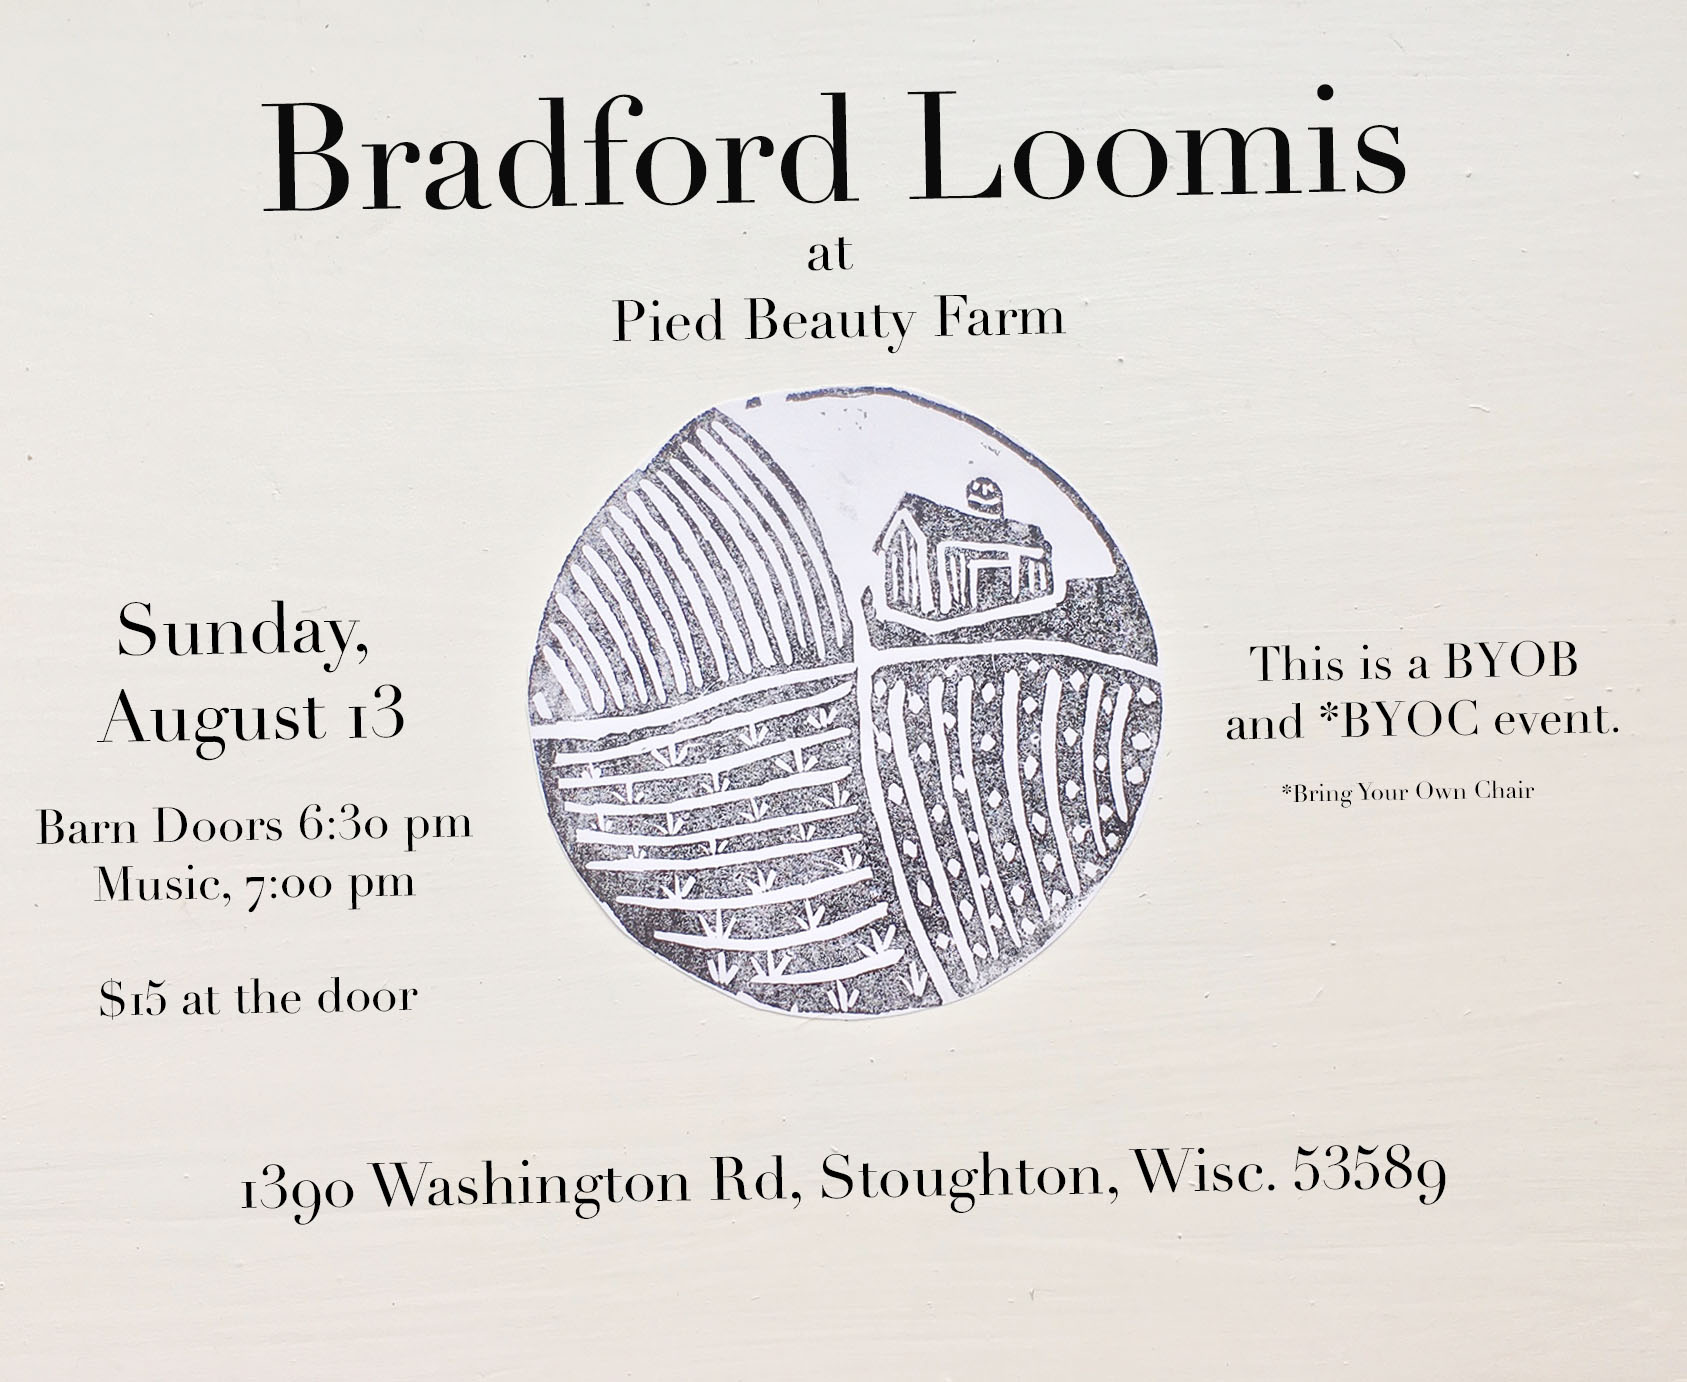 Bradford Loomis announcement